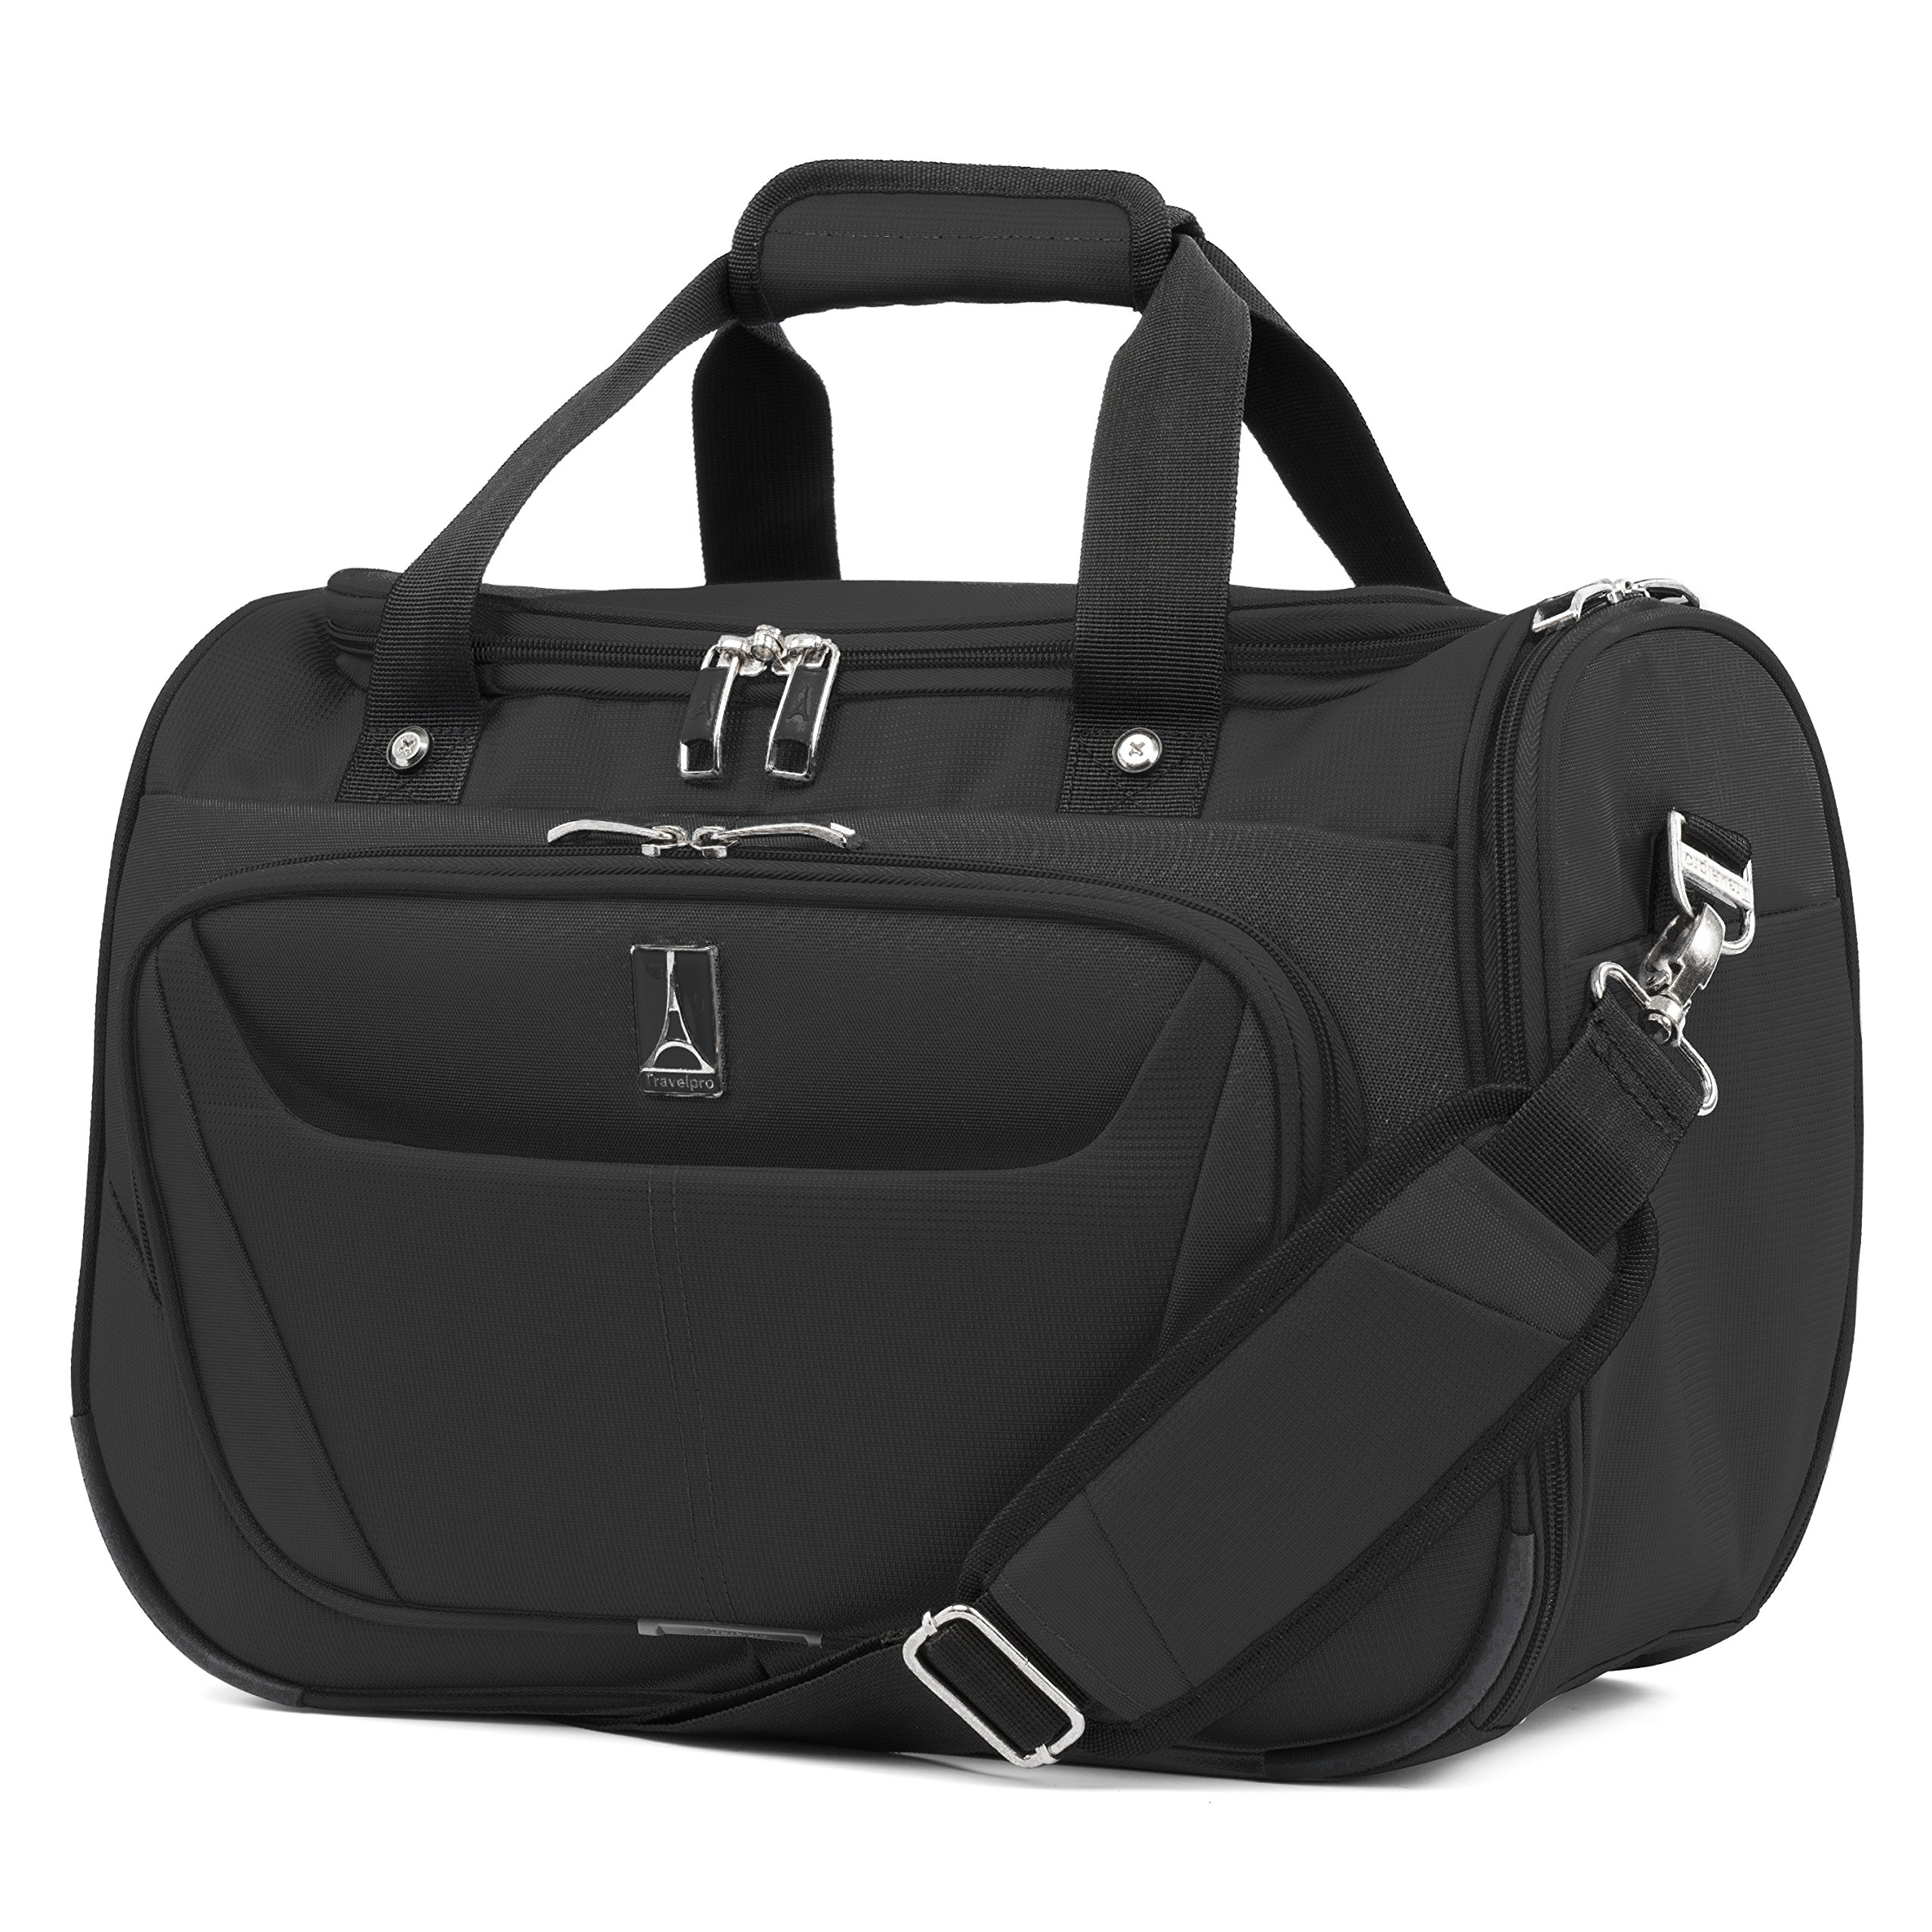 Travelpro Luggage Maxlite 5 18'' Lightweight Carry-on Under Seat Travel Tote, Black, One Size